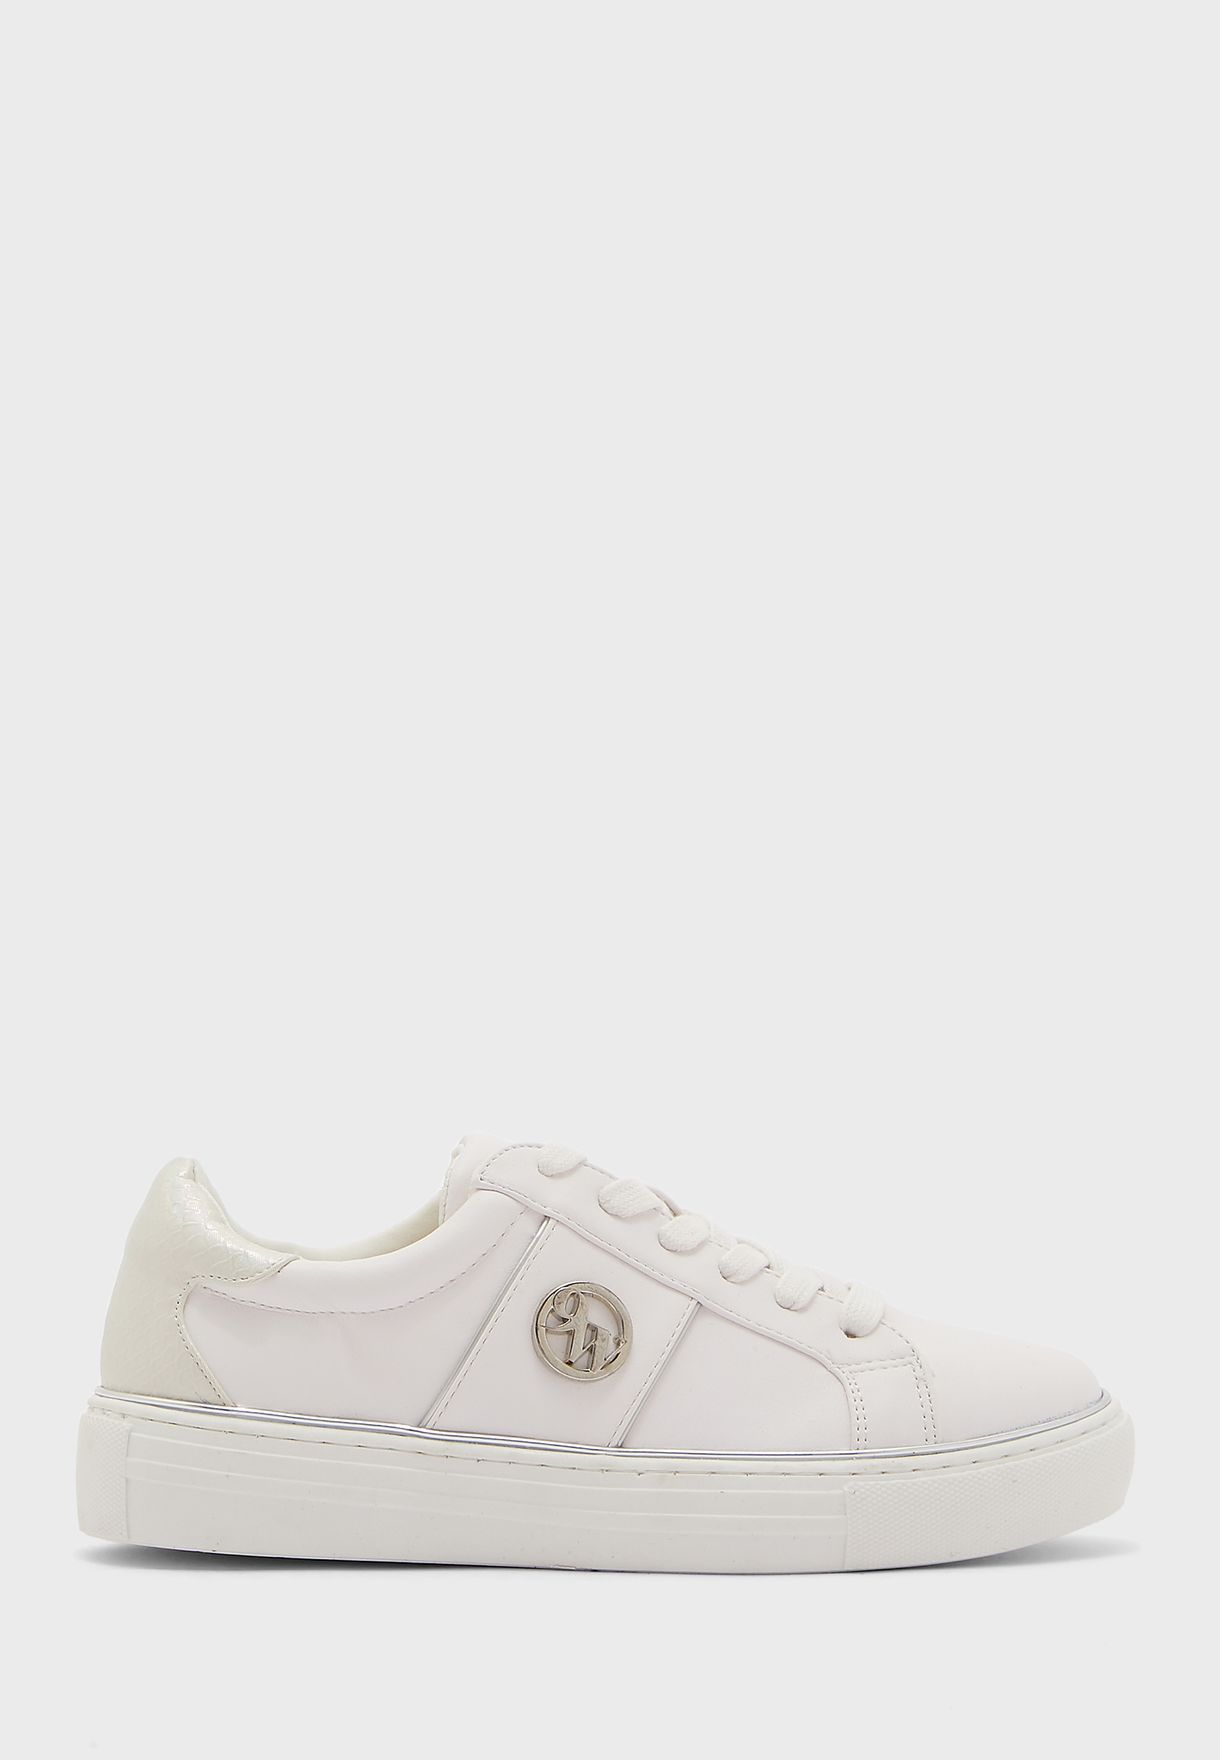 Paterson Folw   Low-Top Sneakers